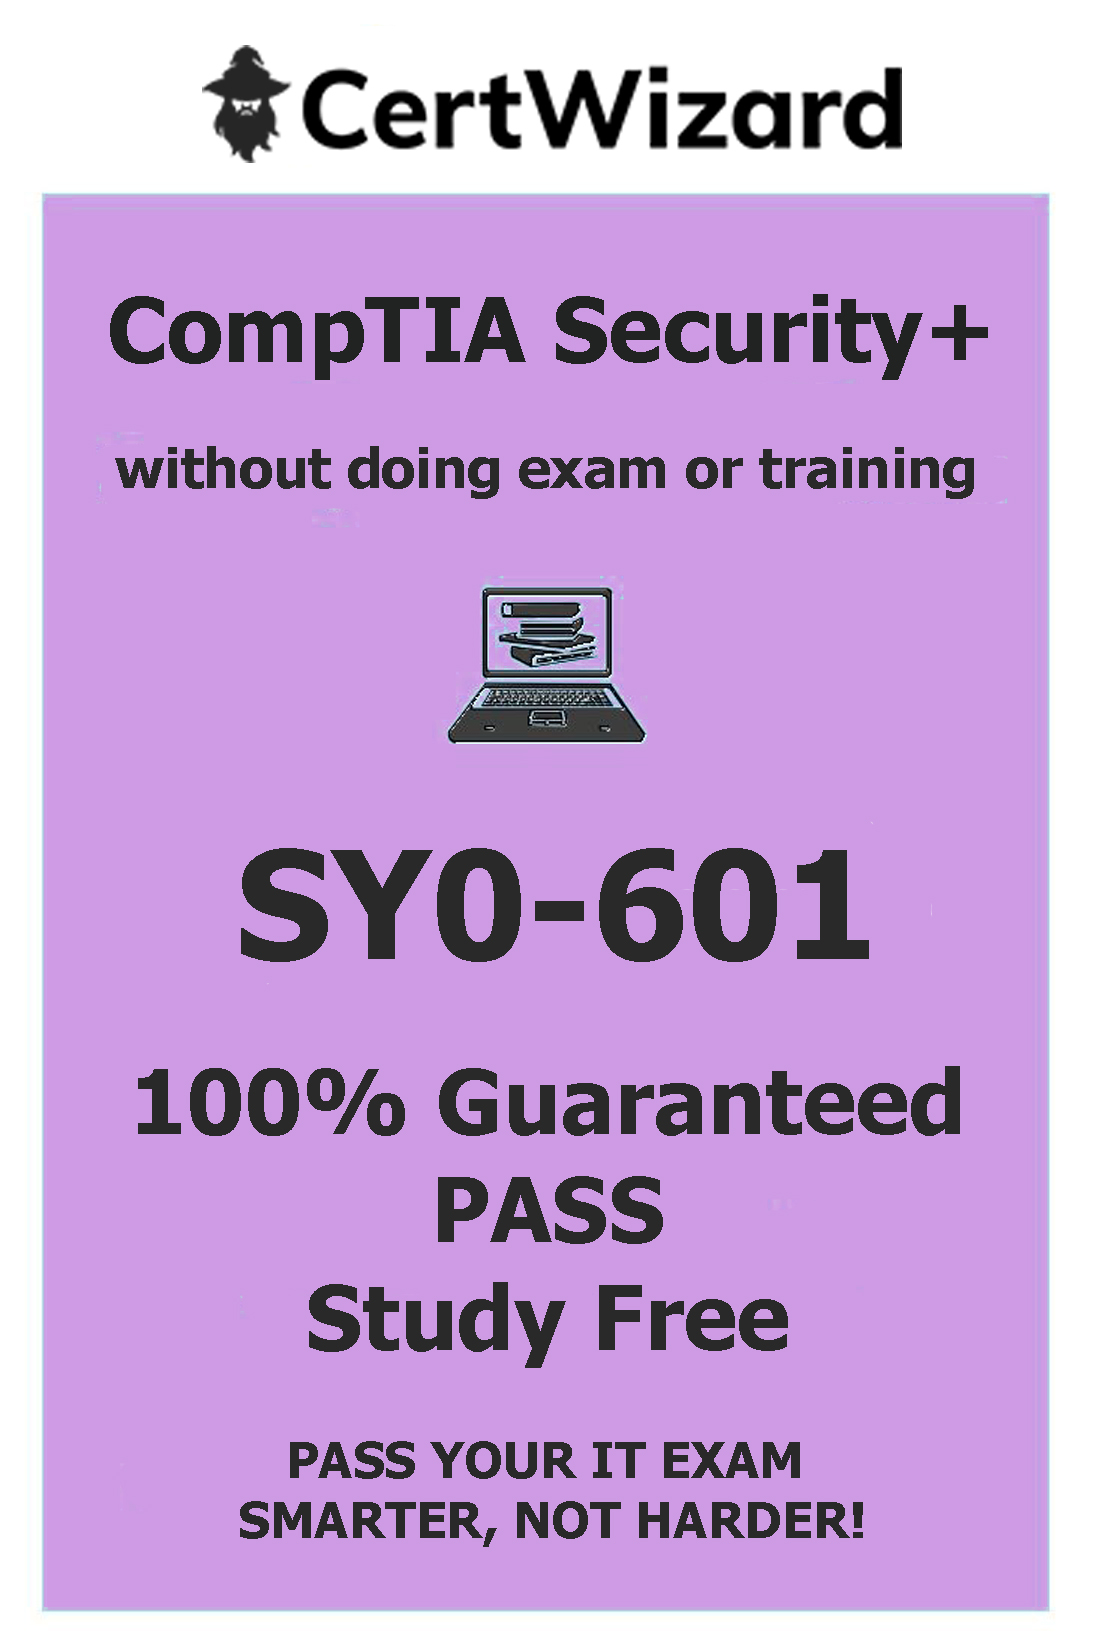 buy CompTIA Security+ exam 100% guaranteed pass study free without exam or prep